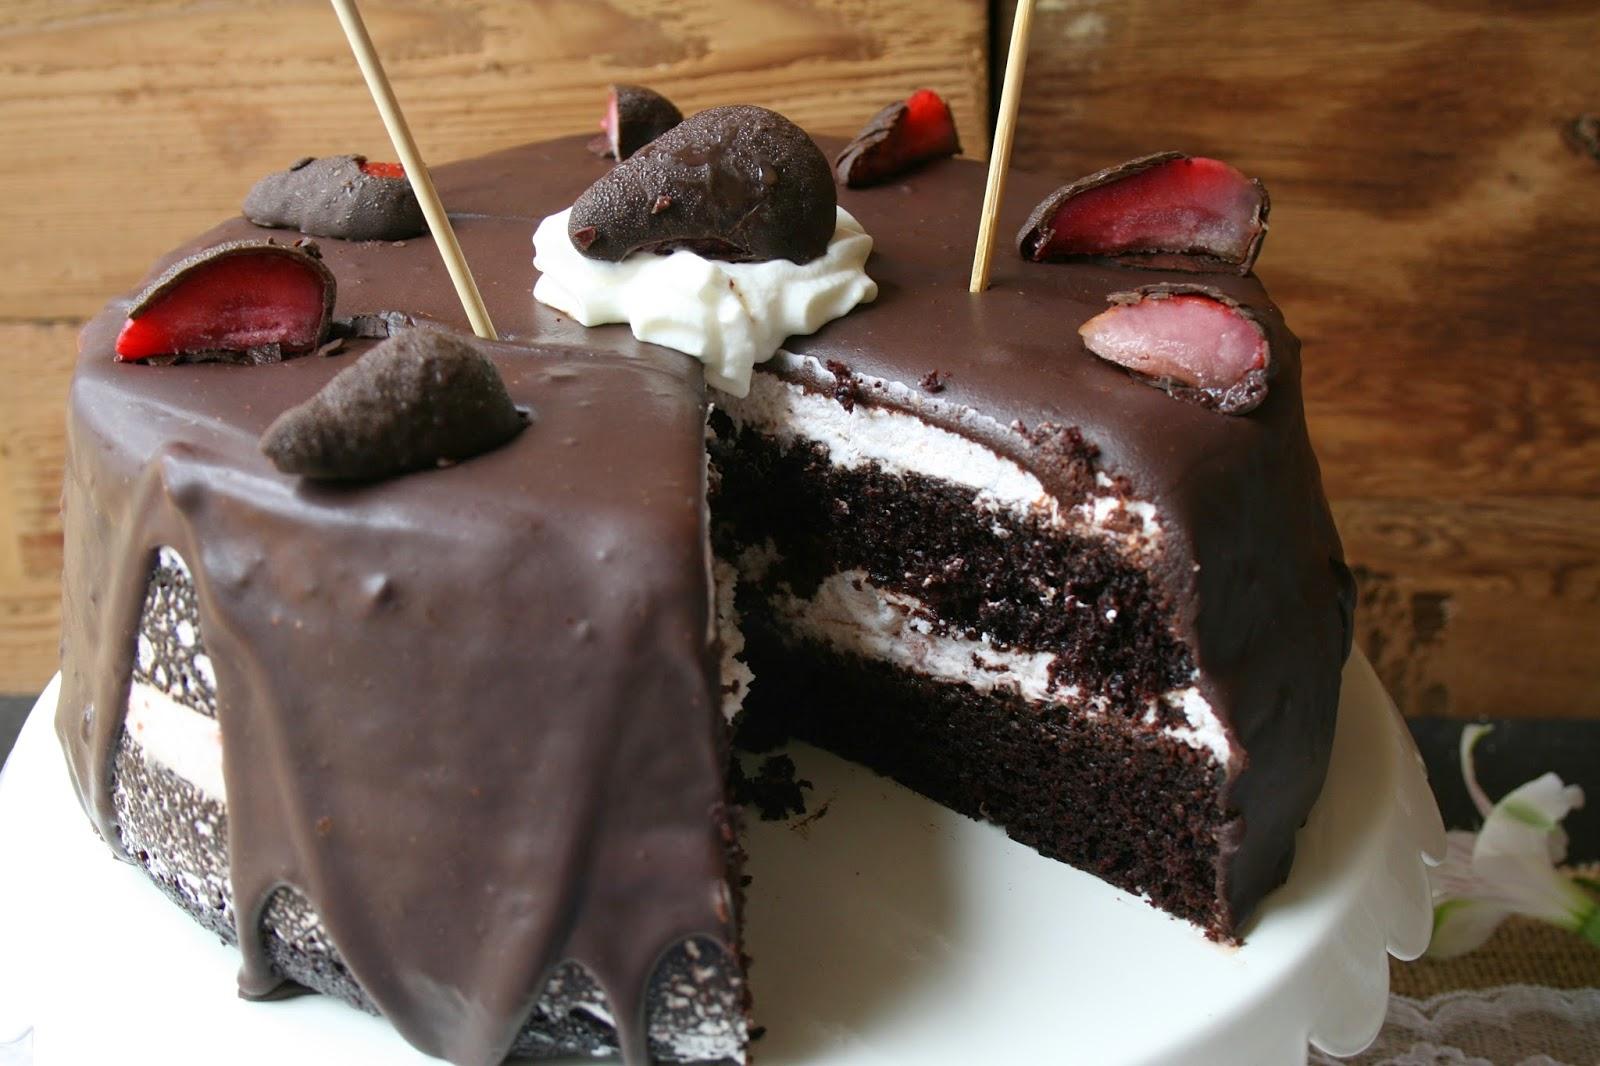 Chocolate mousse filling scene 7